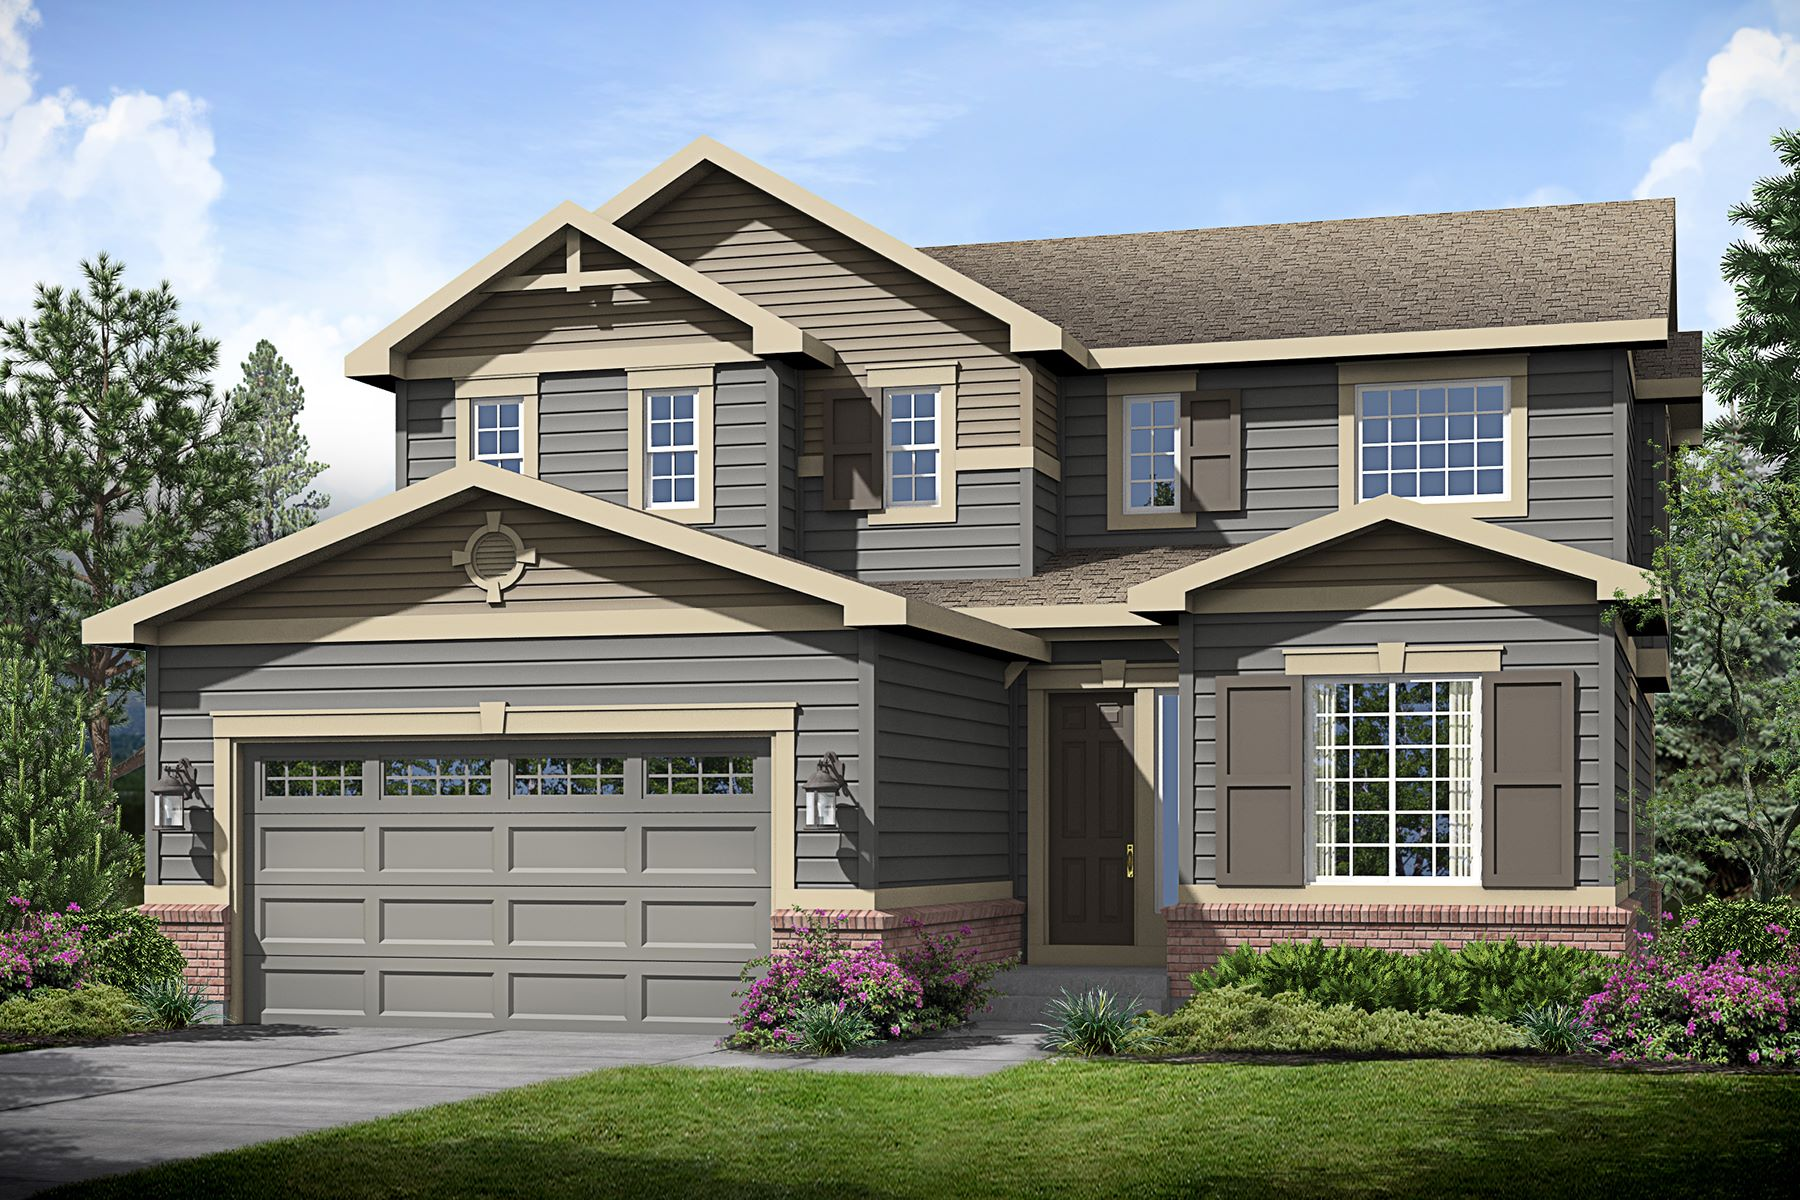 Villa per Vendita alle ore Brand new home in Beacon Point 6671 S Newbern St Aurora, Colorado, 80016 Stati Uniti